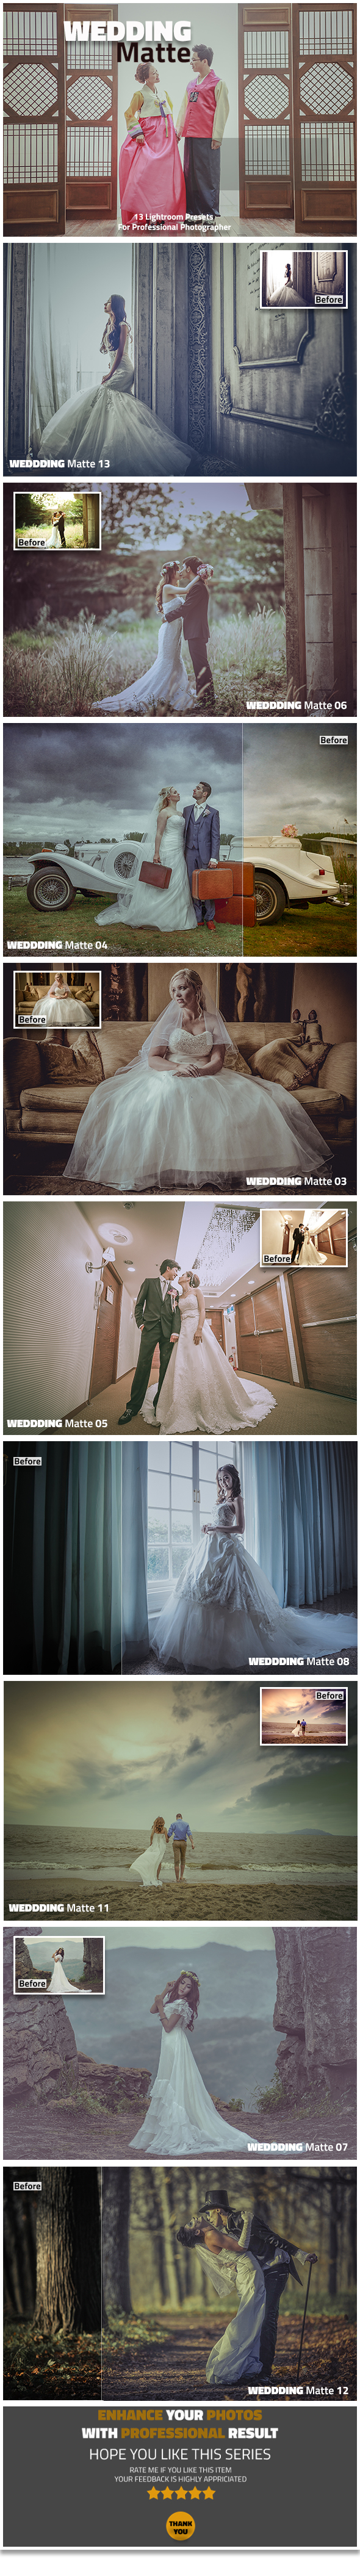 13 Wedding Matte Lightroom Presets - Lightroom Presets Add-ons